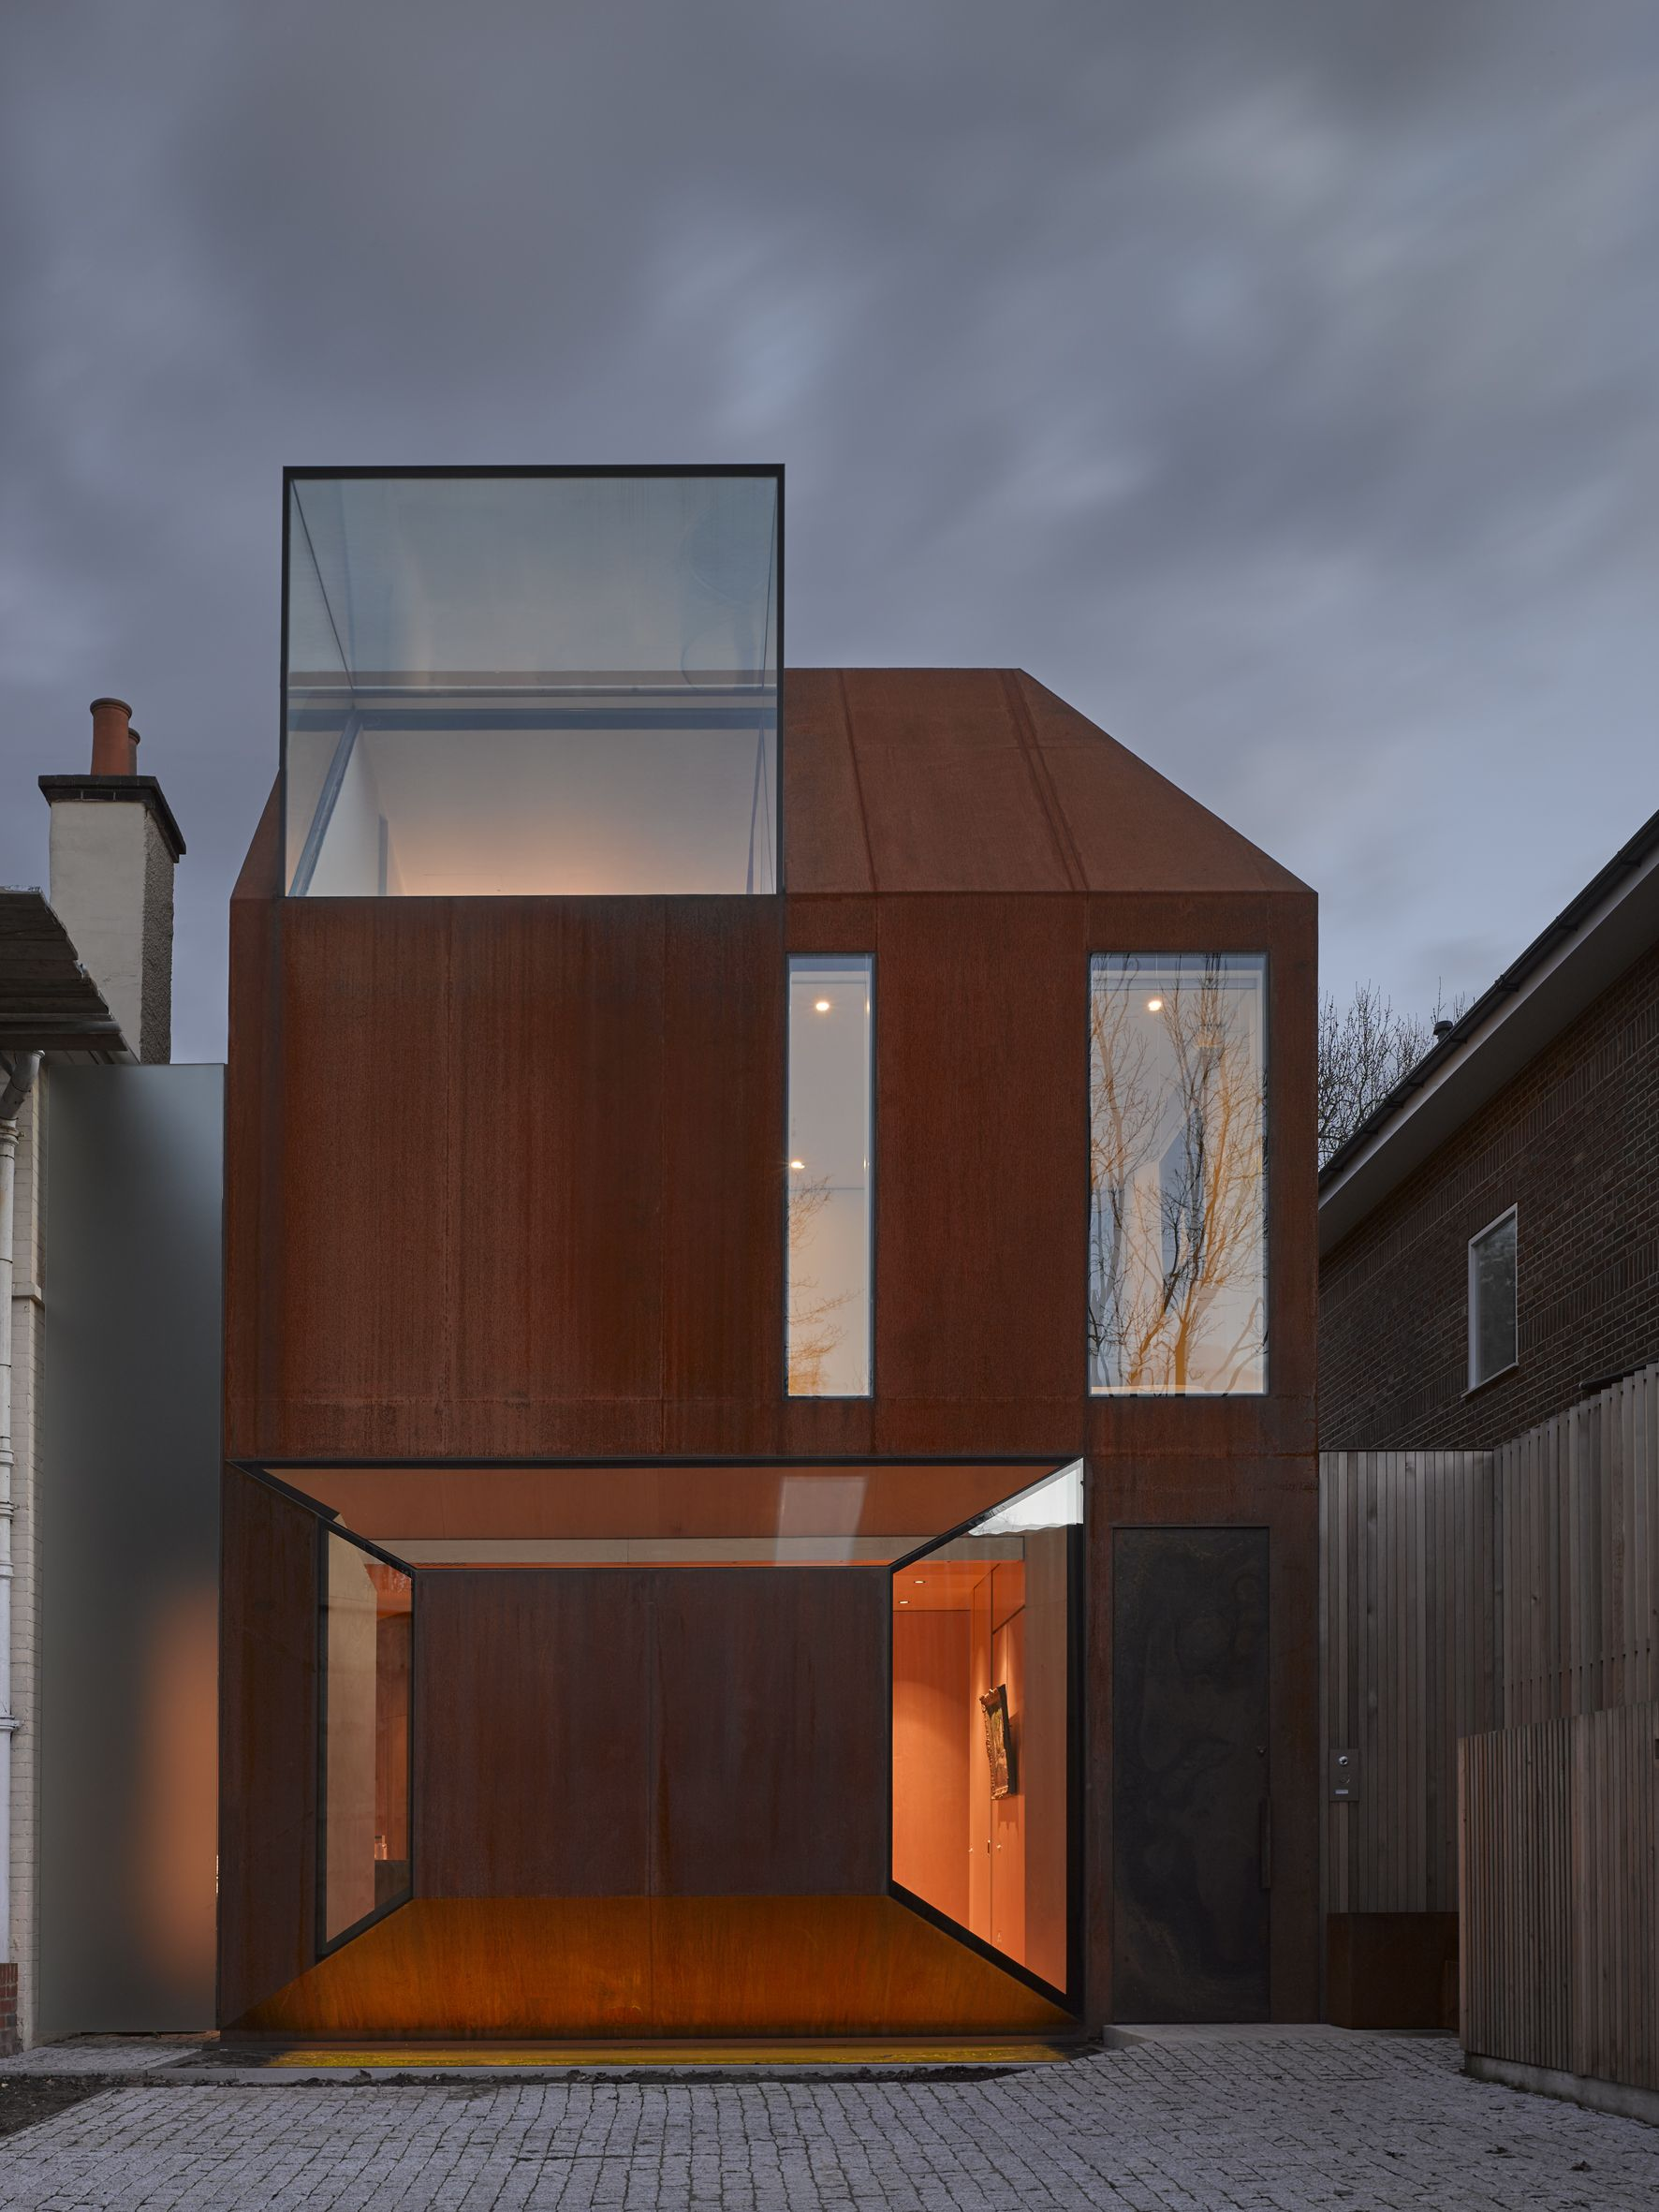 Our Design For A Corten Steel House In West London Has Received A